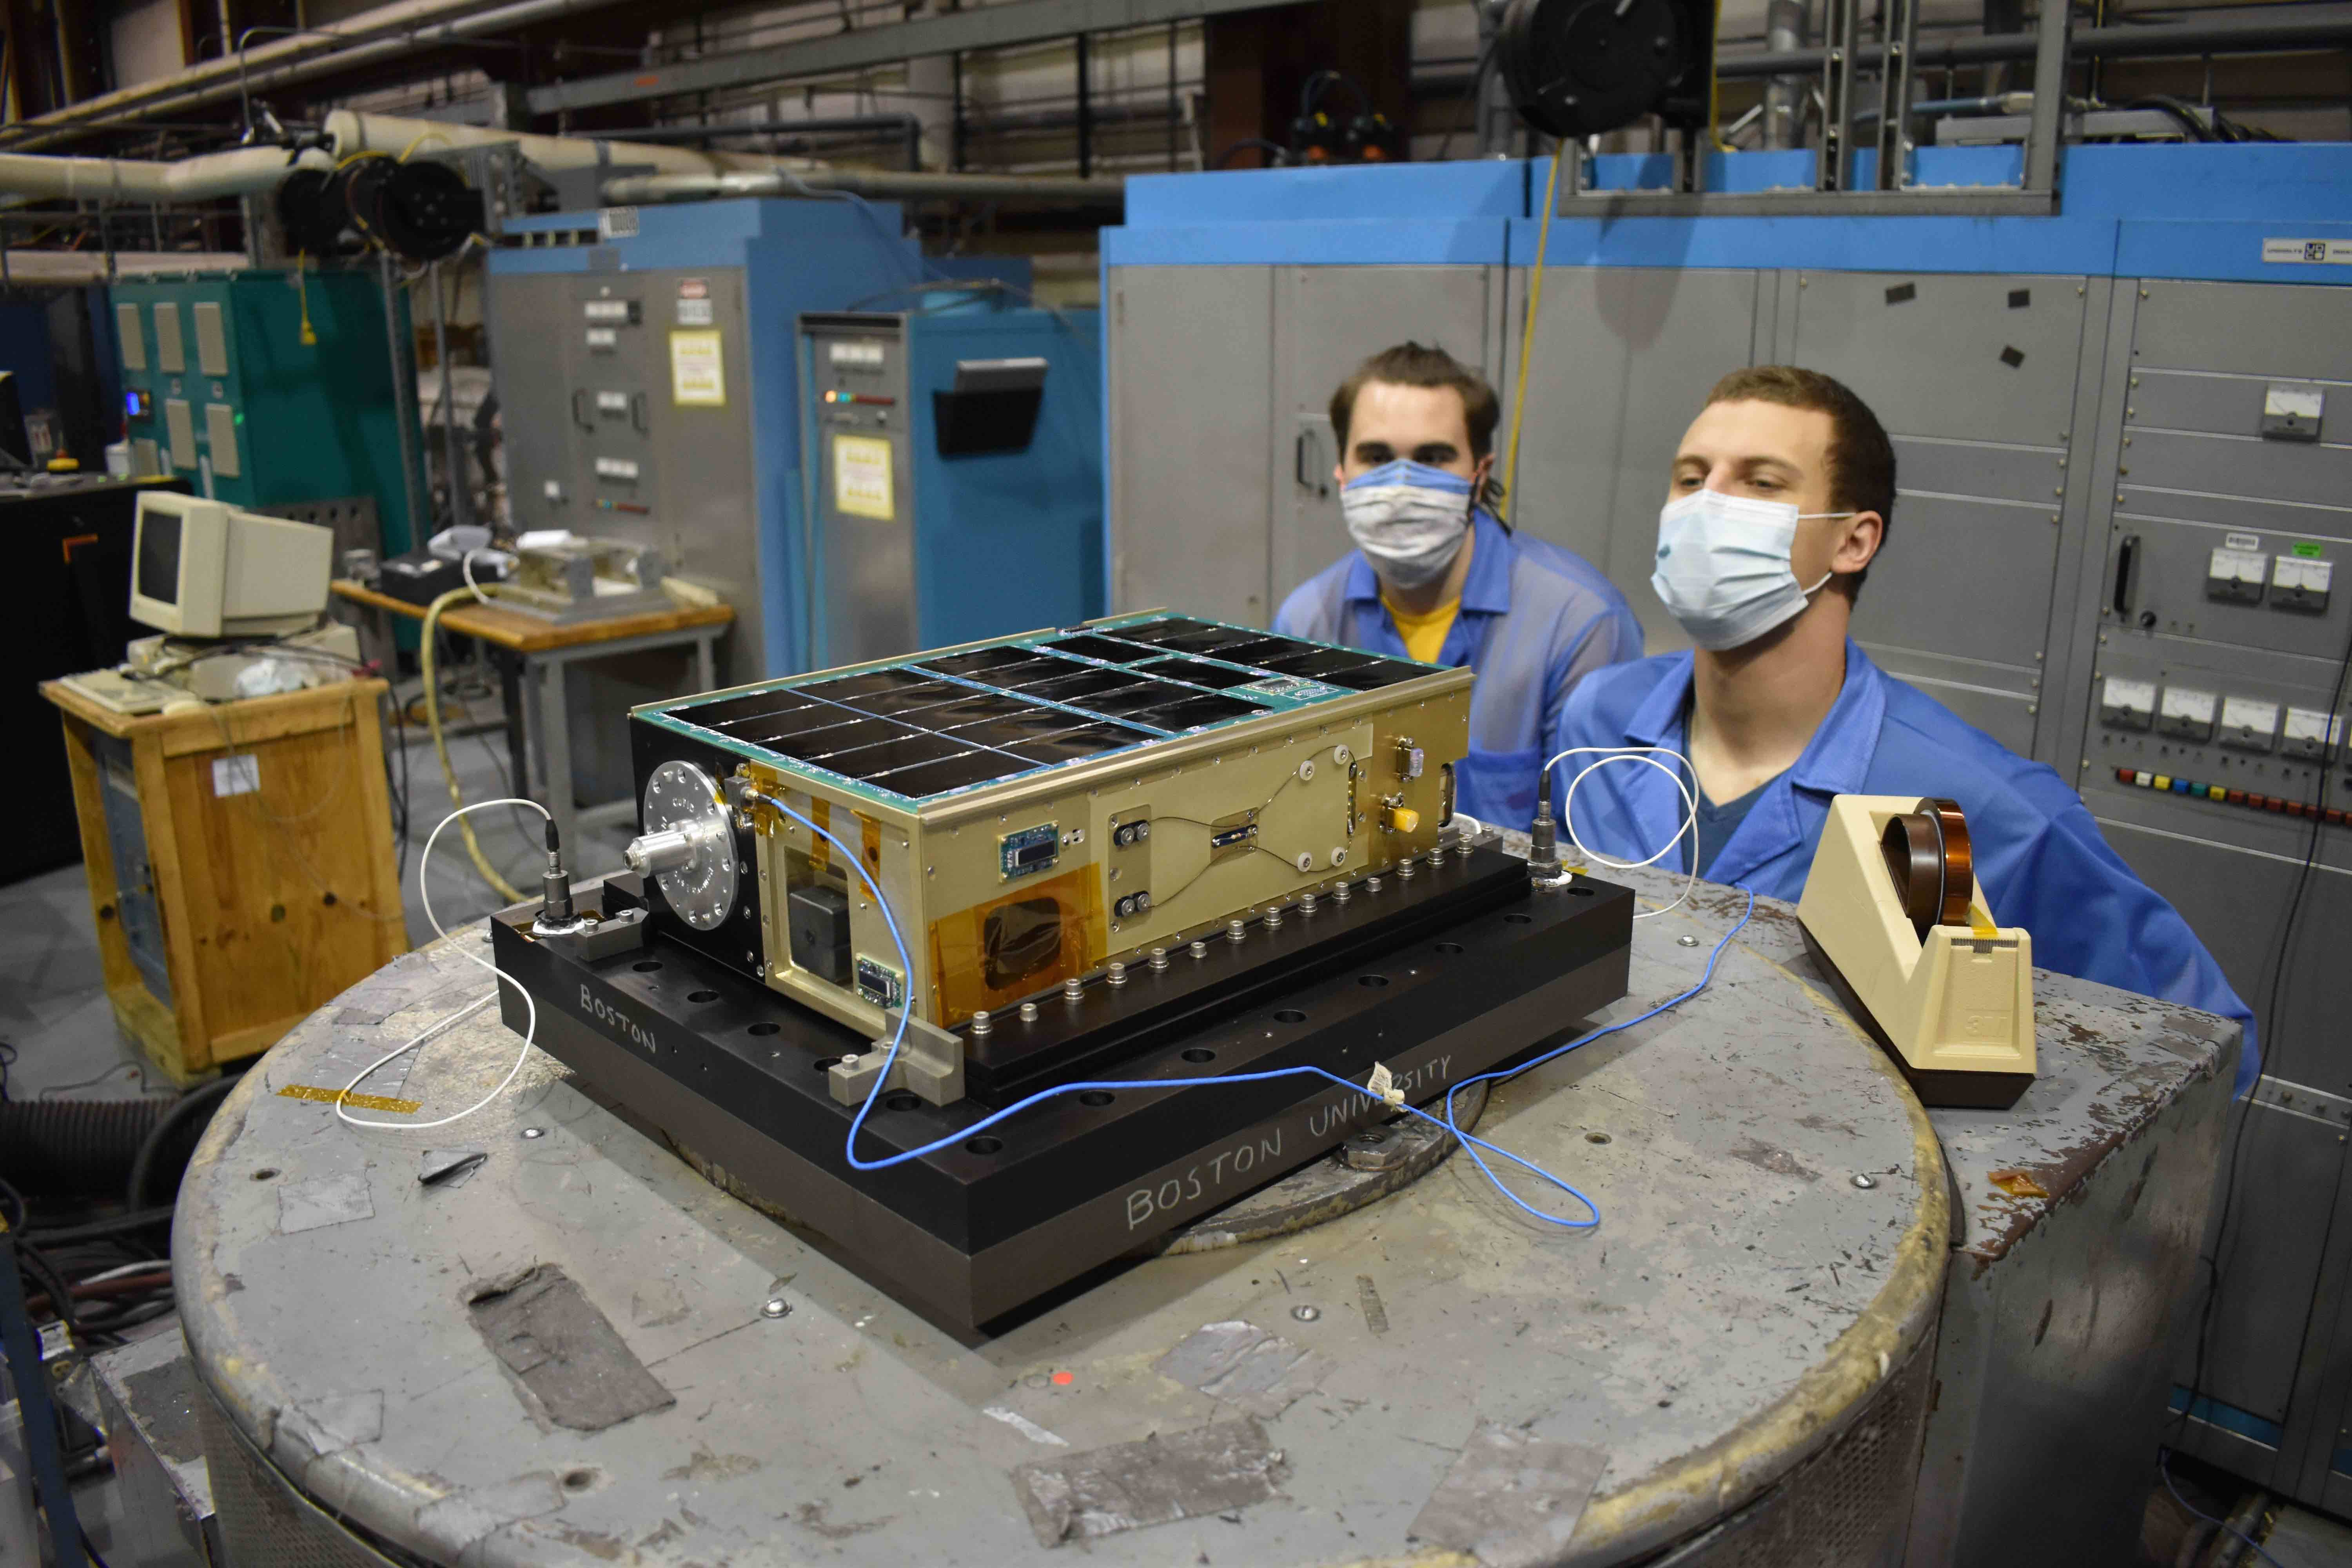 Two men in face masks work on a small satellite, called a cubesat, on a table in a workshop.